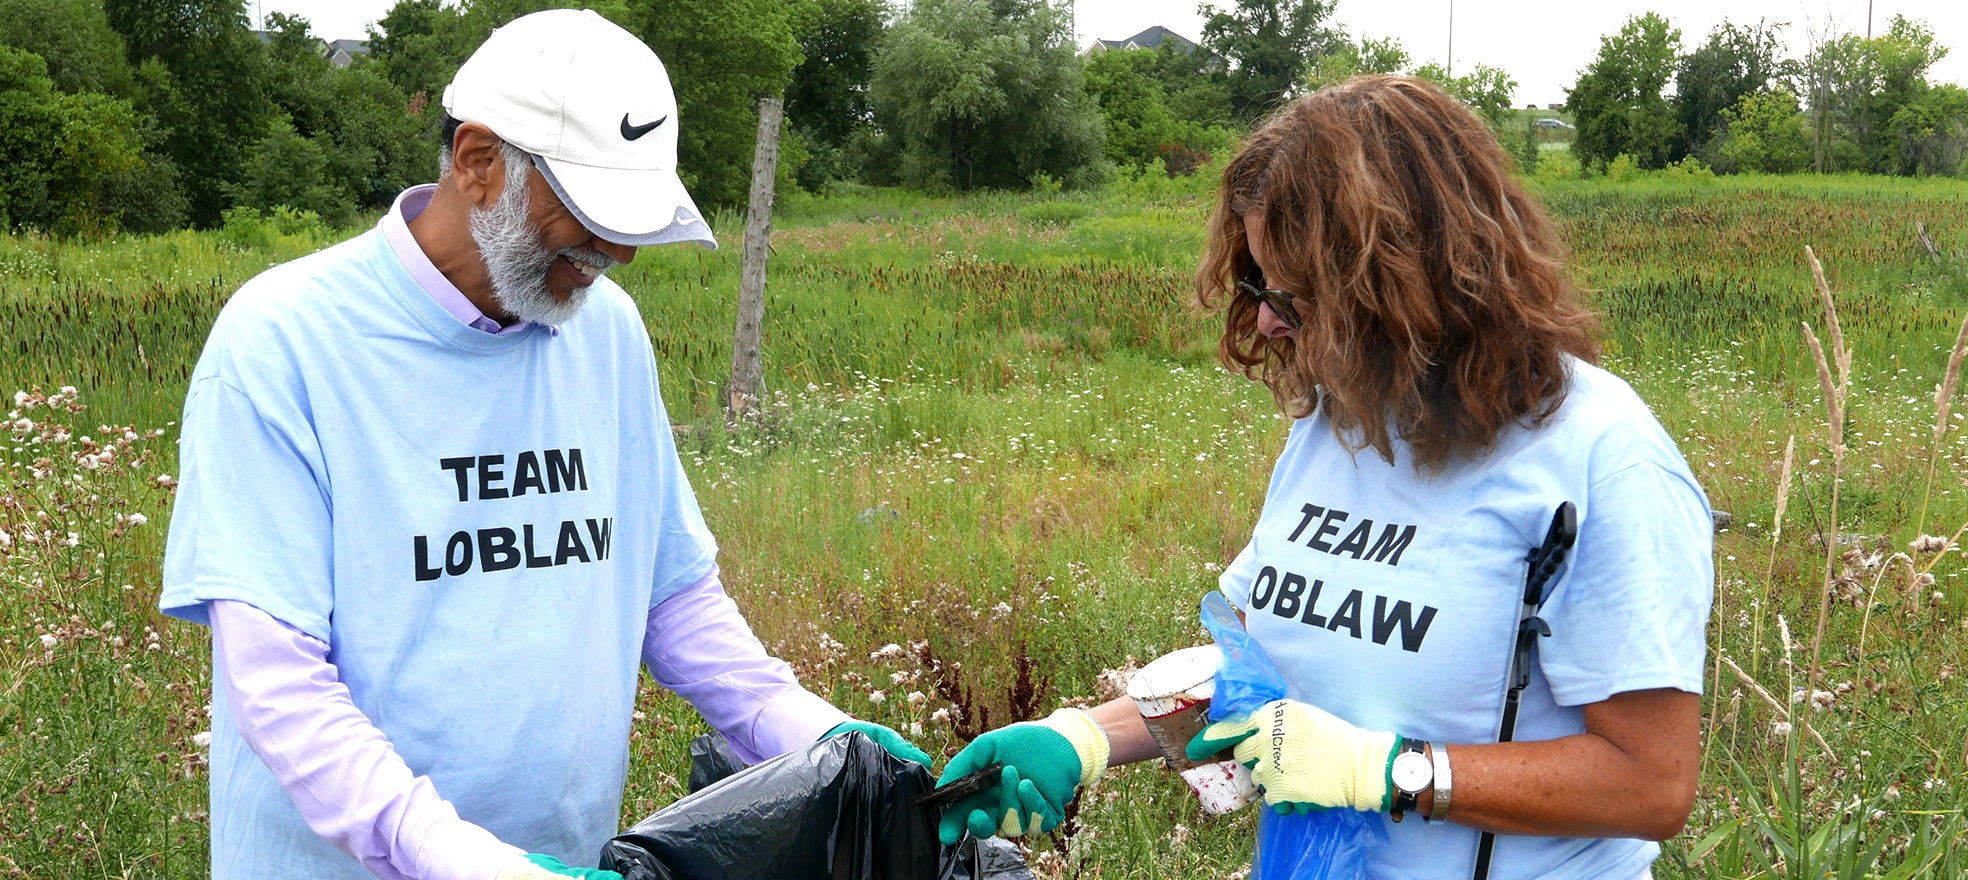 Two people in Team Loblaw T-shirts cleaning up trash in a field.